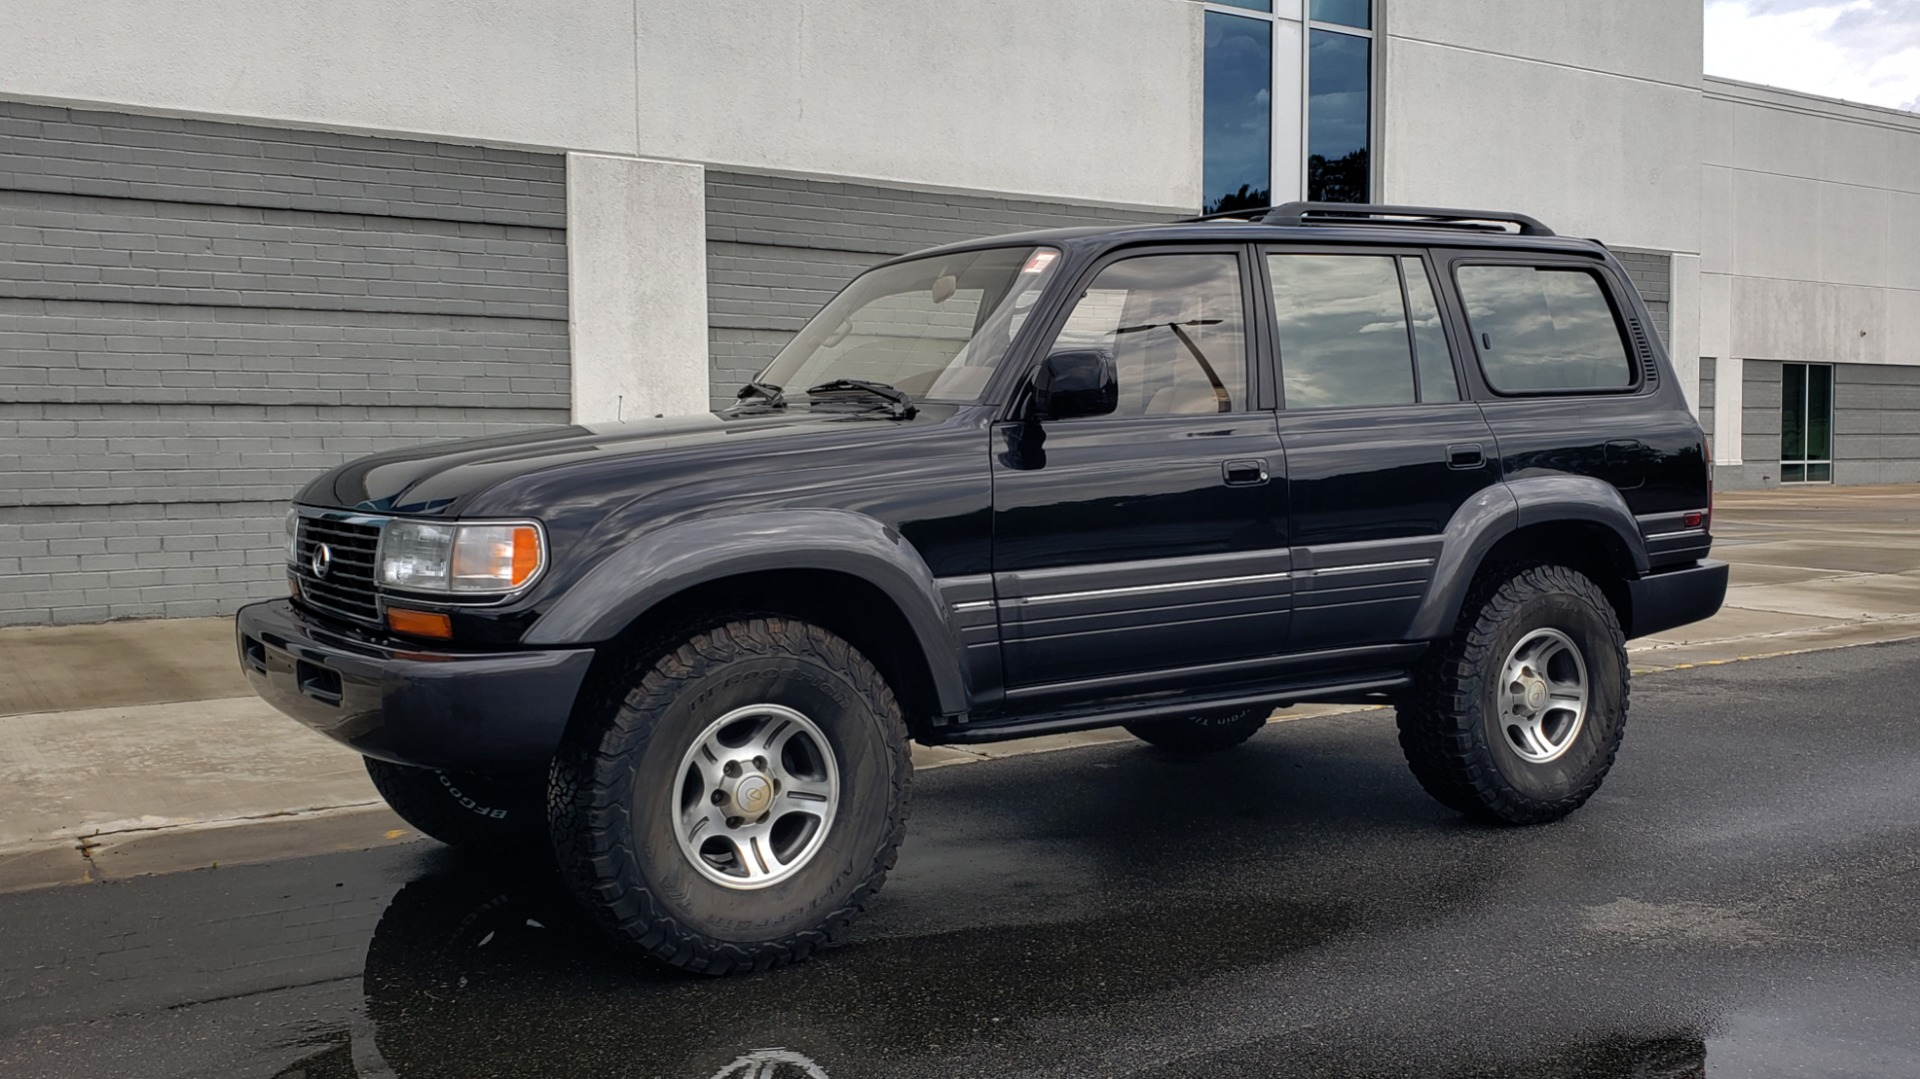 Used 1996 Lexus LX 450 AWD / 4.5L 6-CYL / 4-SPD AUTO / RUNNING BOARDS / NEW BFG TIRES for sale $49,995 at Formula Imports in Charlotte NC 28227 3